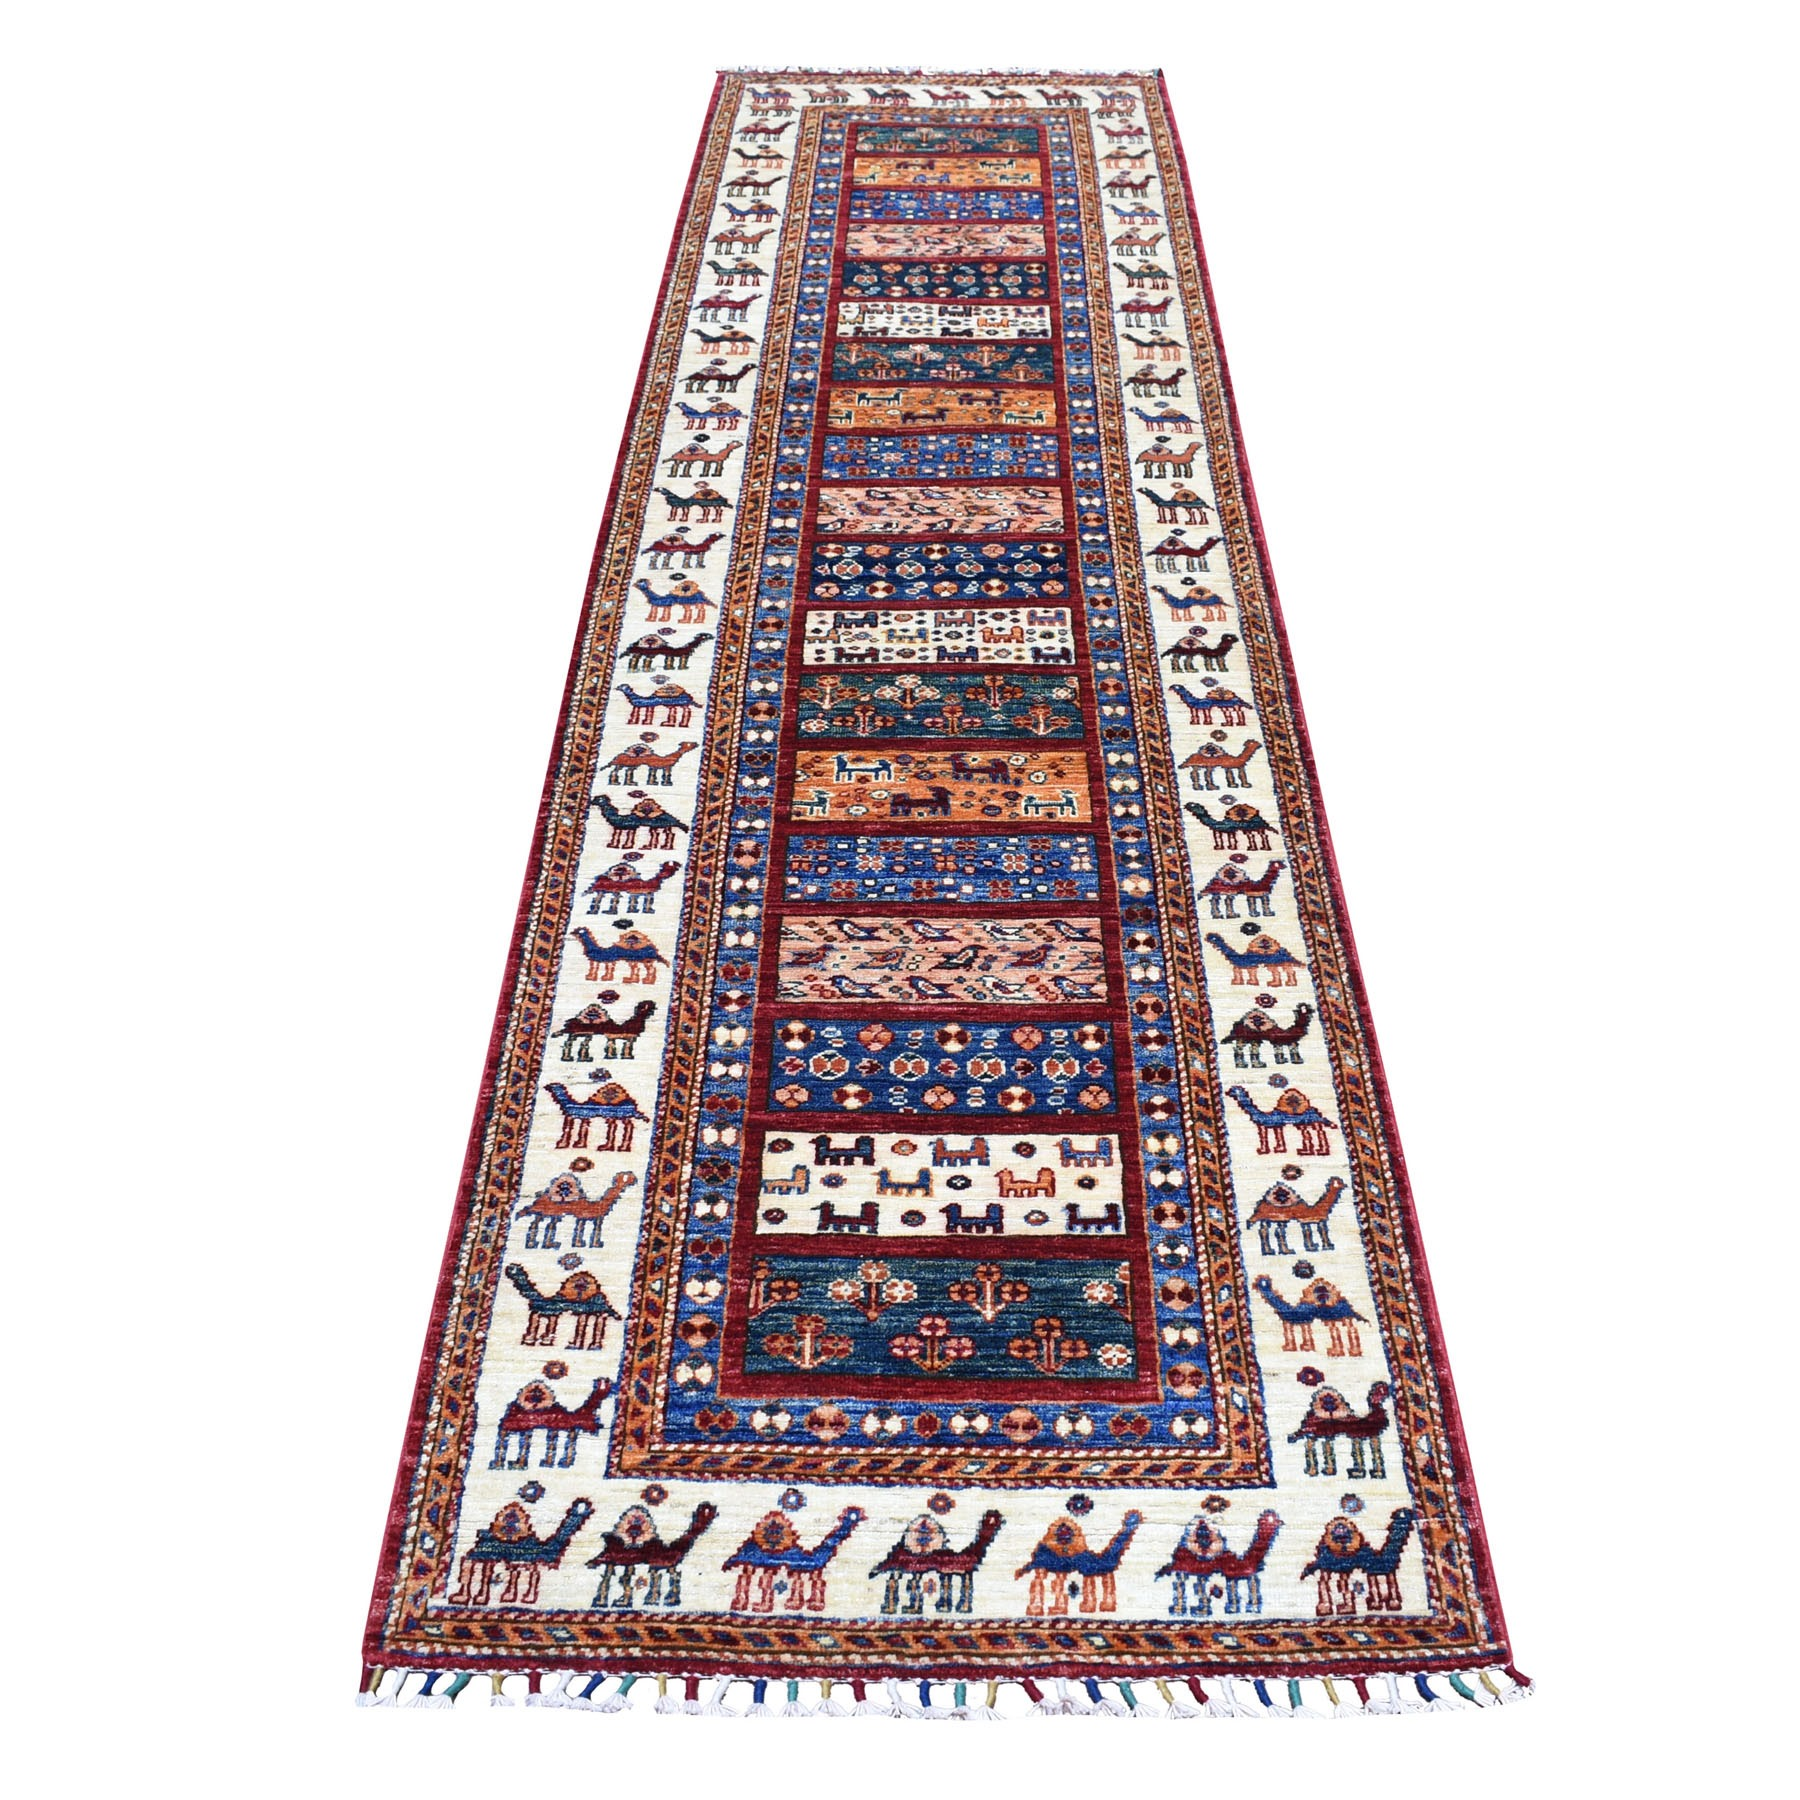 "2'8""x10' Khorjin Design Colorful Runner Super Kazak Pure Wool Hand Woven Oriental Rug"